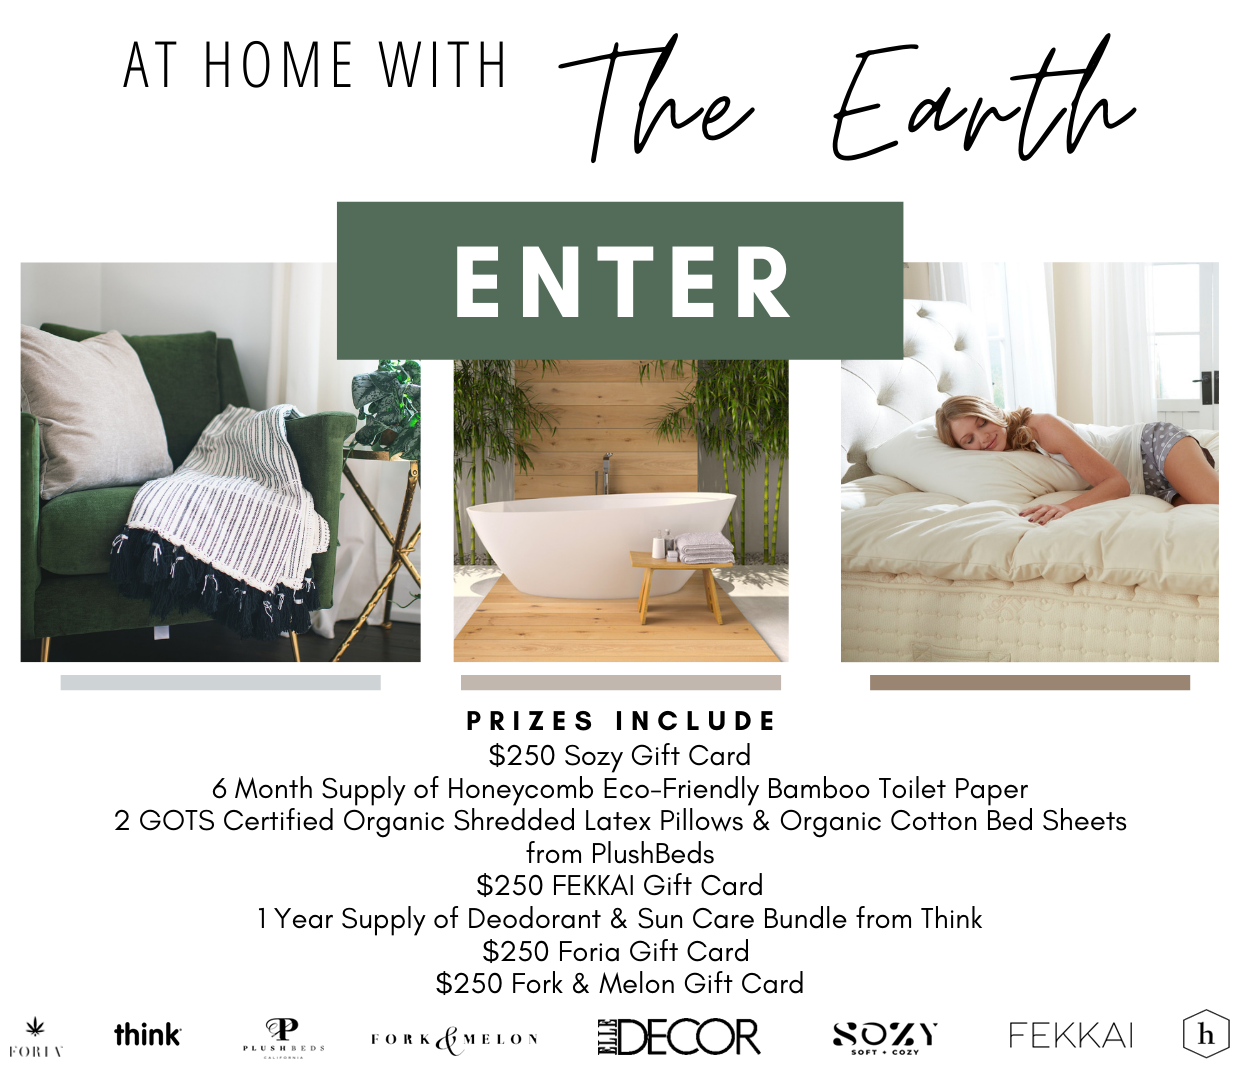 Enter for a chance to win: $250 Sozy Gift Card, 6 Month Supply of Honeycomb Eco-Friendly Bamboo Toilet Paper, 2 GOTS Certified Organic Shredded Latex Pillows & Organic Cotton Bed Sheets from PlushBeds, $250 FEKKAI Gift Card, 1 Year Supply of Deodorant & Sun Care Bundle from Think, $250 Foria Gift Card , $250 Fork & Melon Gift Card